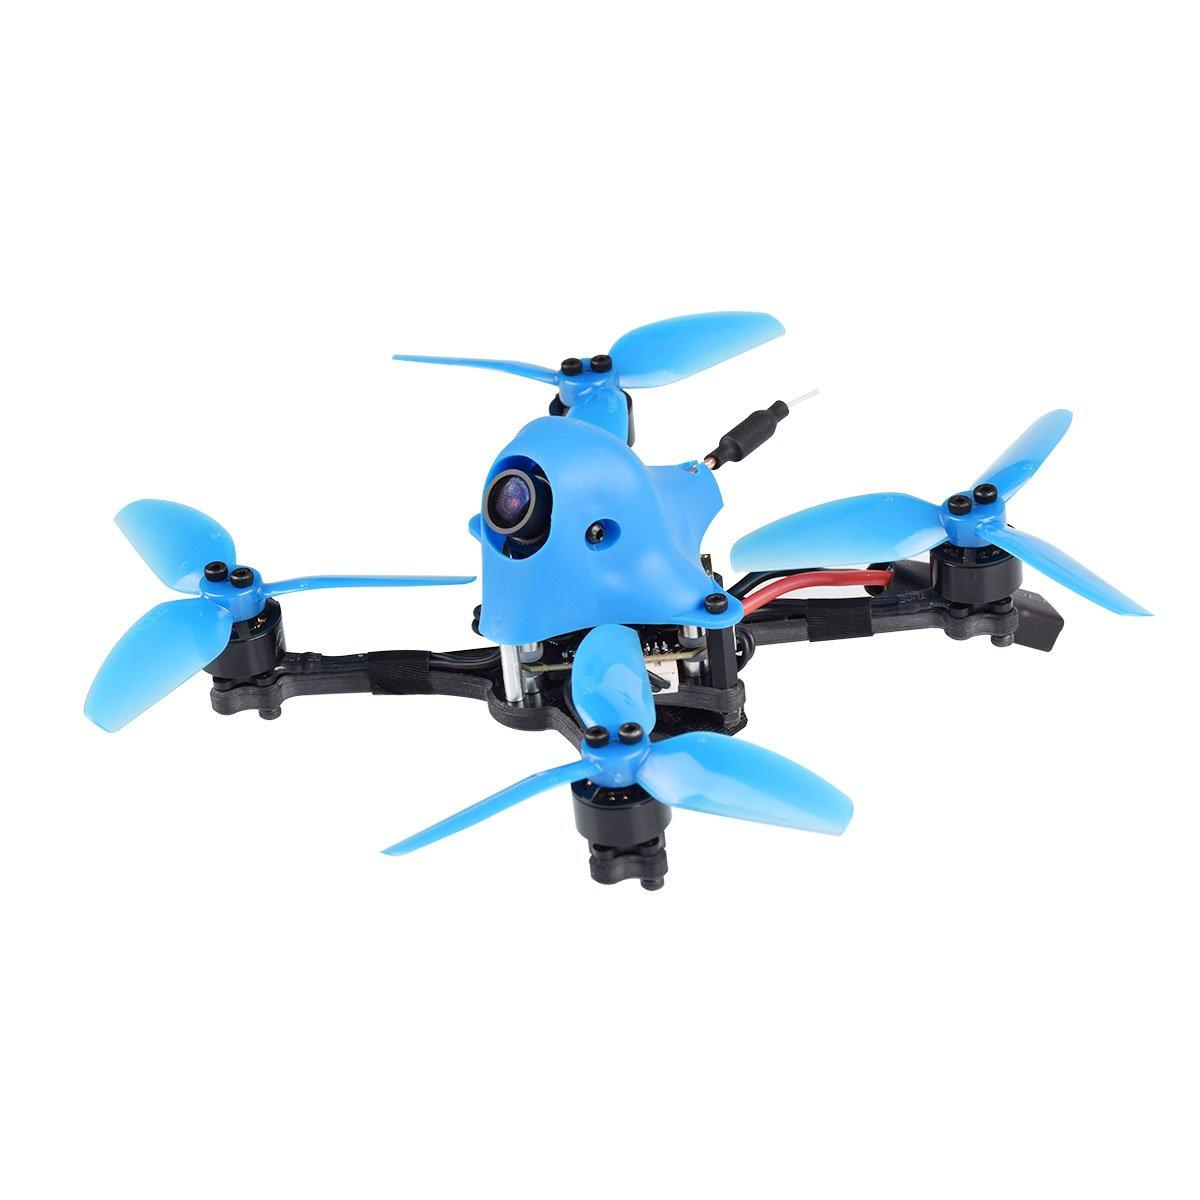 hx115 hd toothpick drone by betafpv